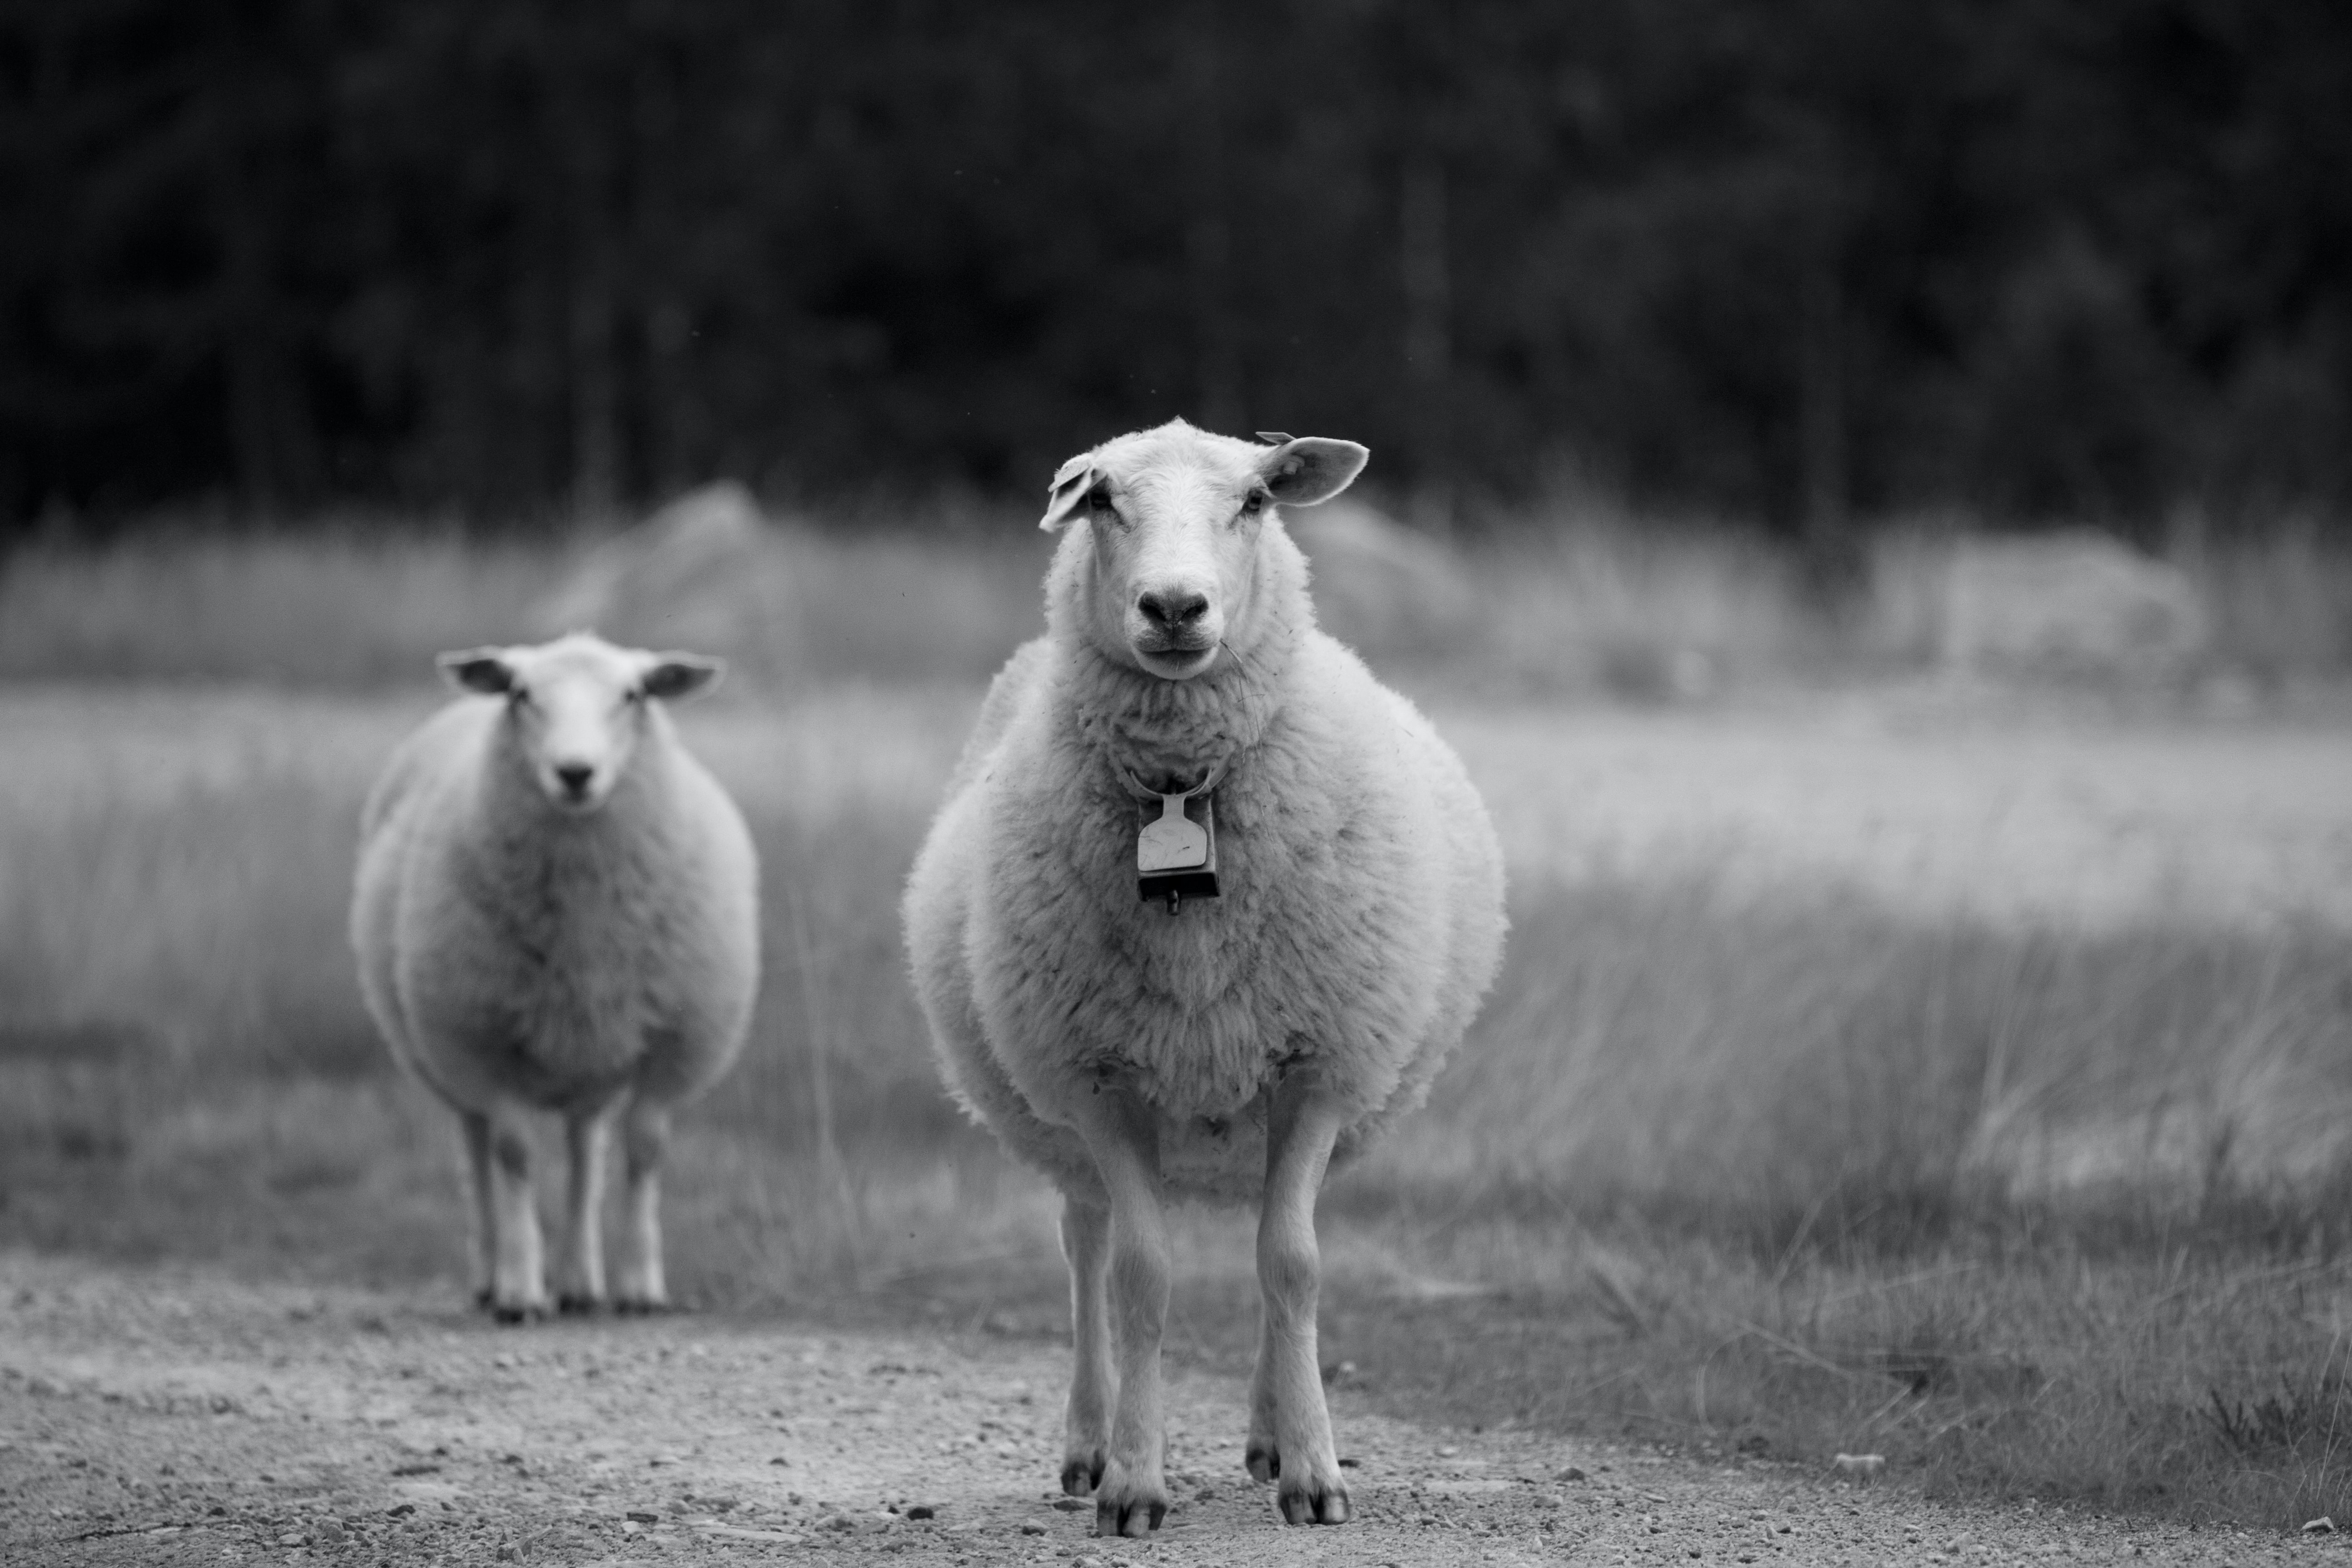 two sheeps near grass